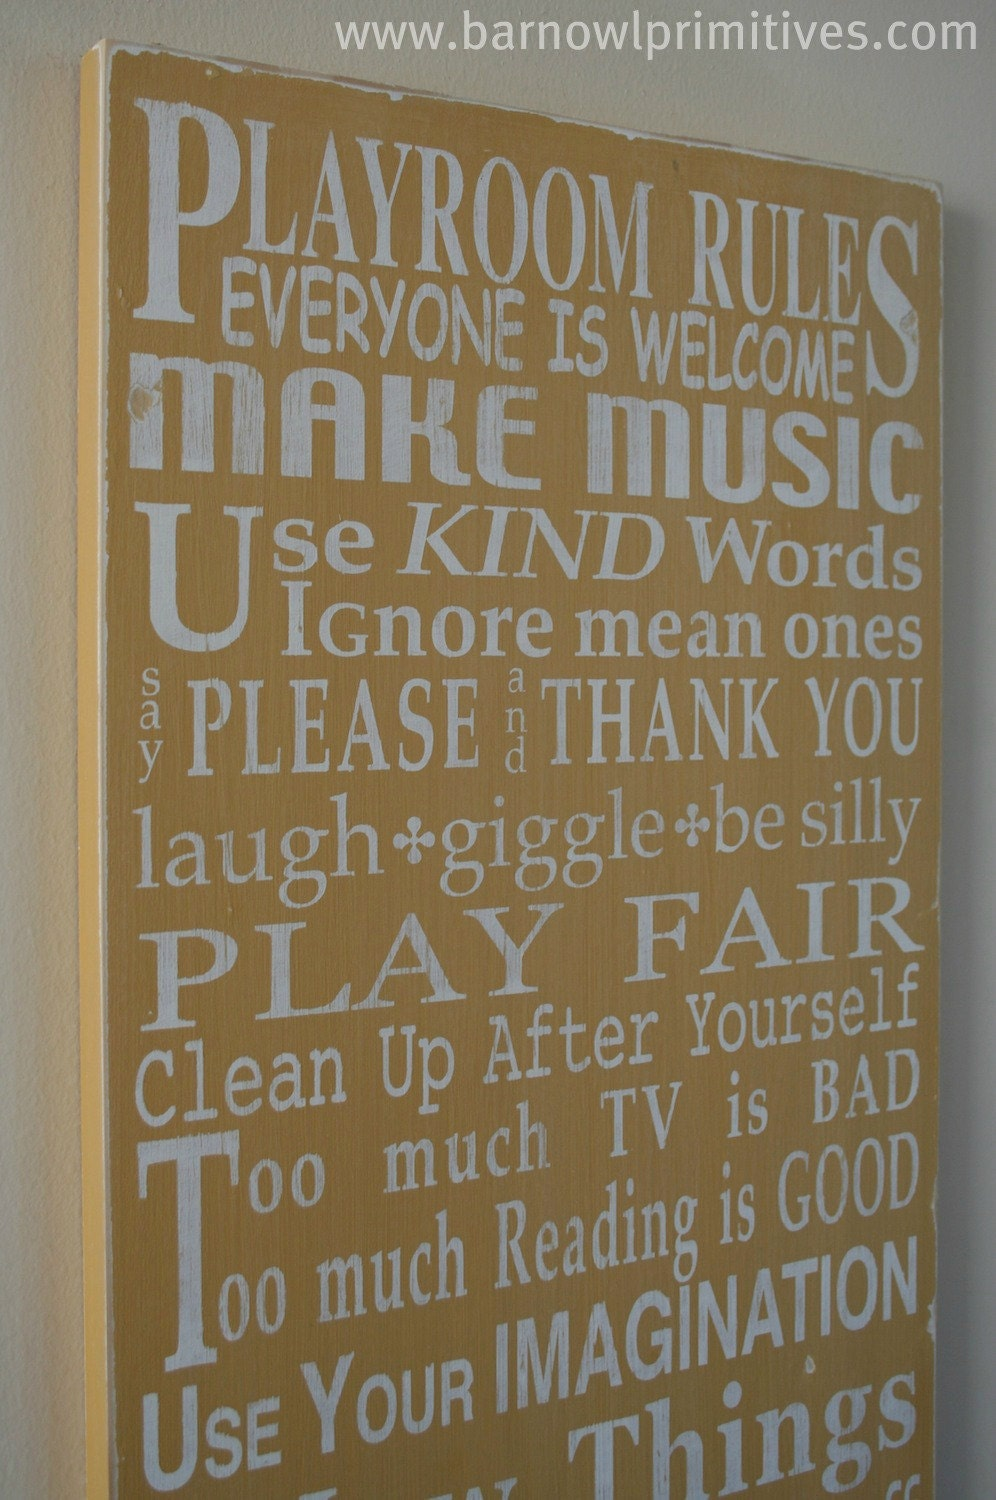 Playroom Rules Sign Painted Wood Sign By Barn Owl Primitives. Anxious Attachment Signs. Men's Health Signs Of Stroke. High Blood Pressure Signs. Car Racing Signs. Artistic Signs Of Stroke. Extreme Signs Of Stroke. Spread Signs. Type 69 Signs Of Stroke